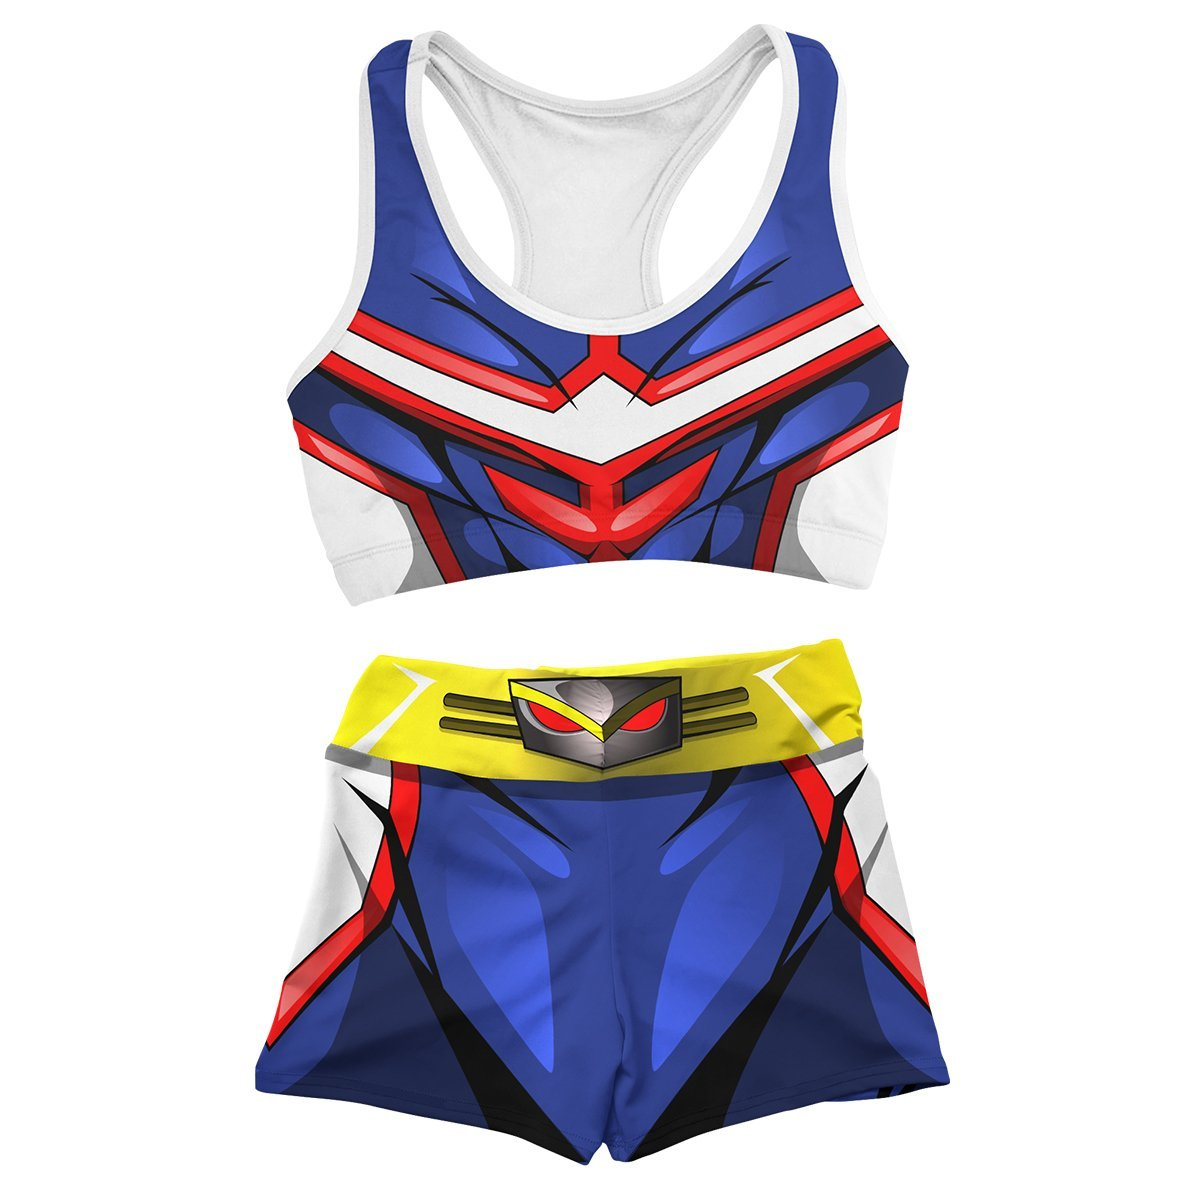 UA High All Might Active Wear Set FDM3107 Entire Set Official Anime Swimsuit Merch